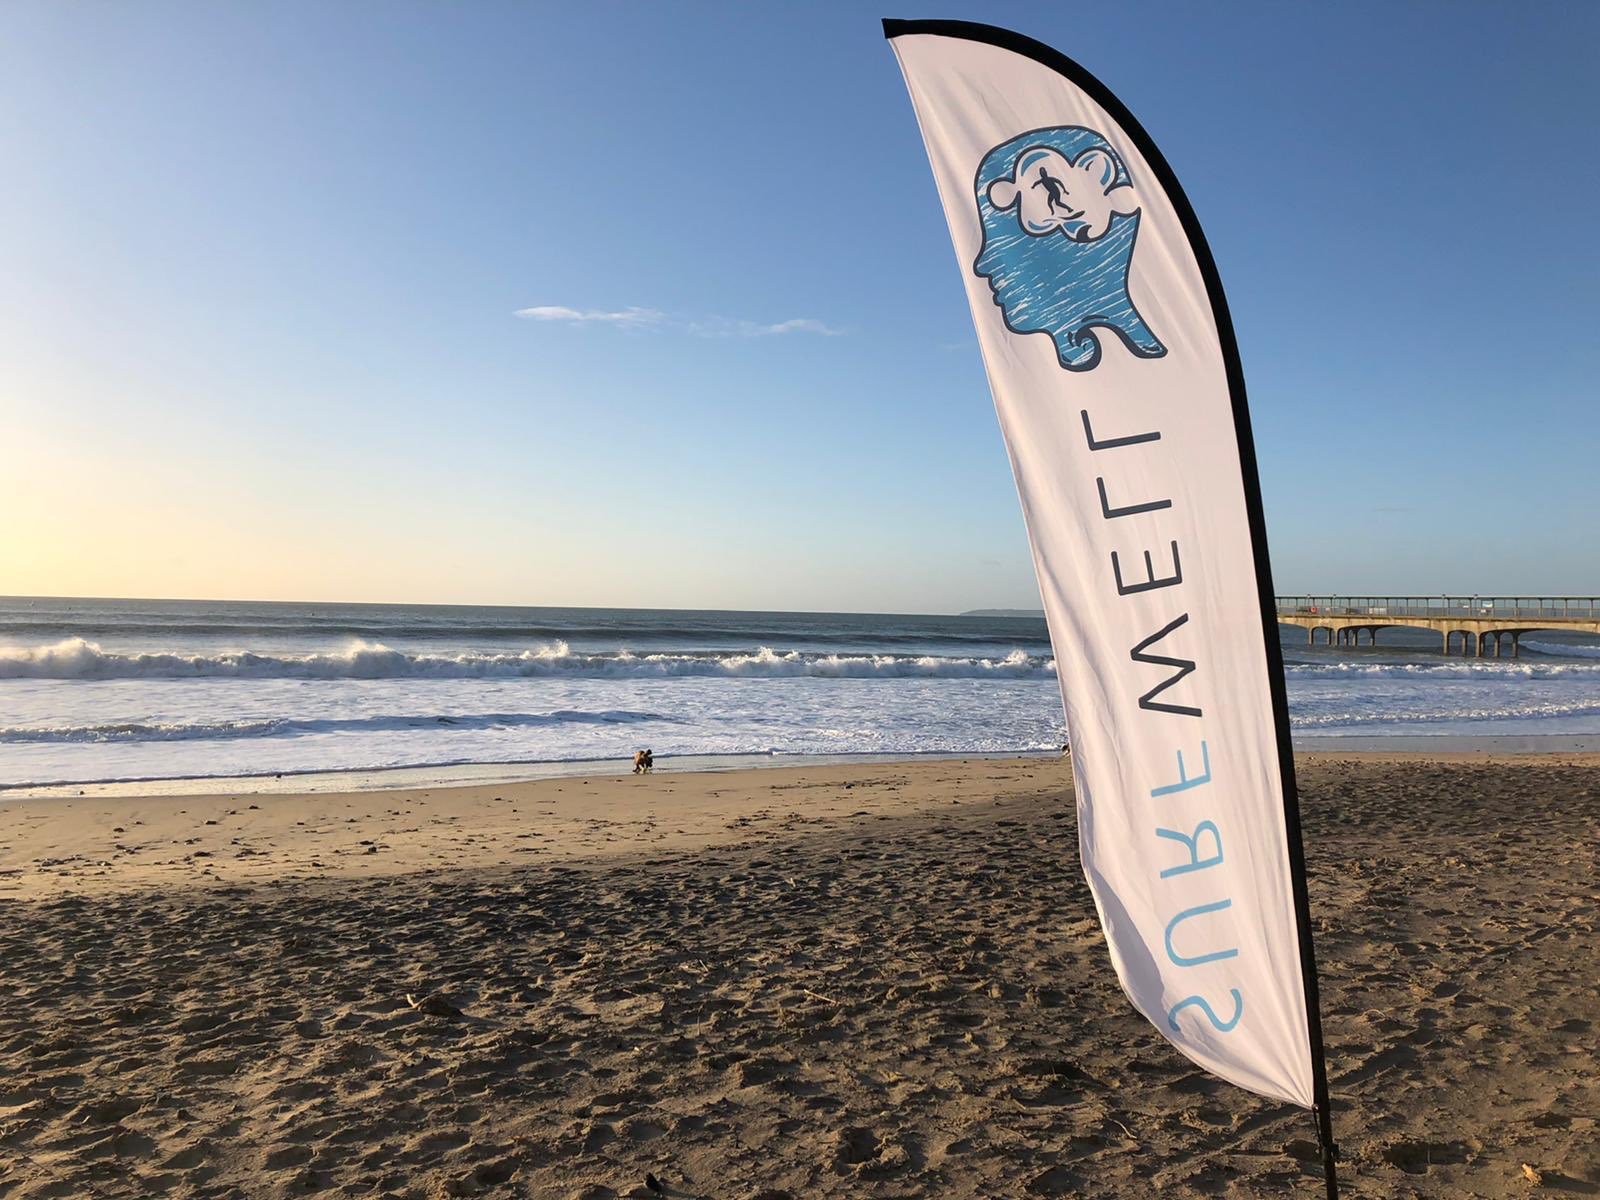 Want to improve your wellbeing through surfing?